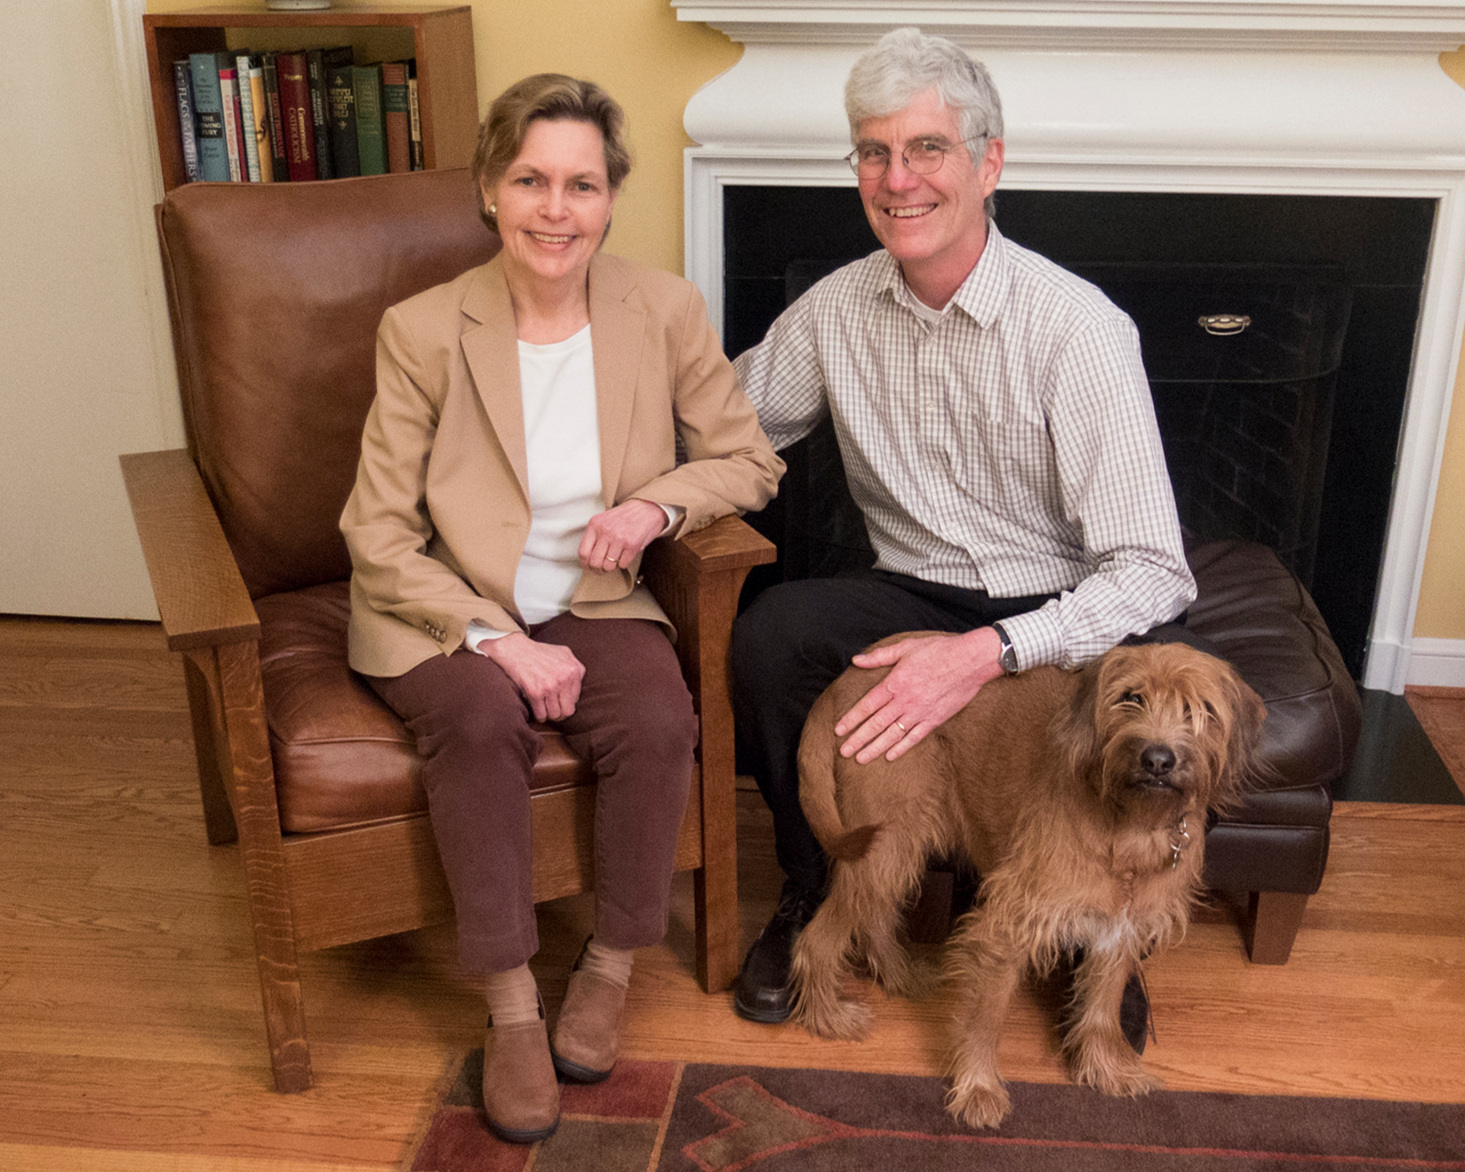 Kathy and her husband, Michael Costanzo have lived in Charlottesville for 32 years. Beloved dog, Orion, has been a family member for 6 years.